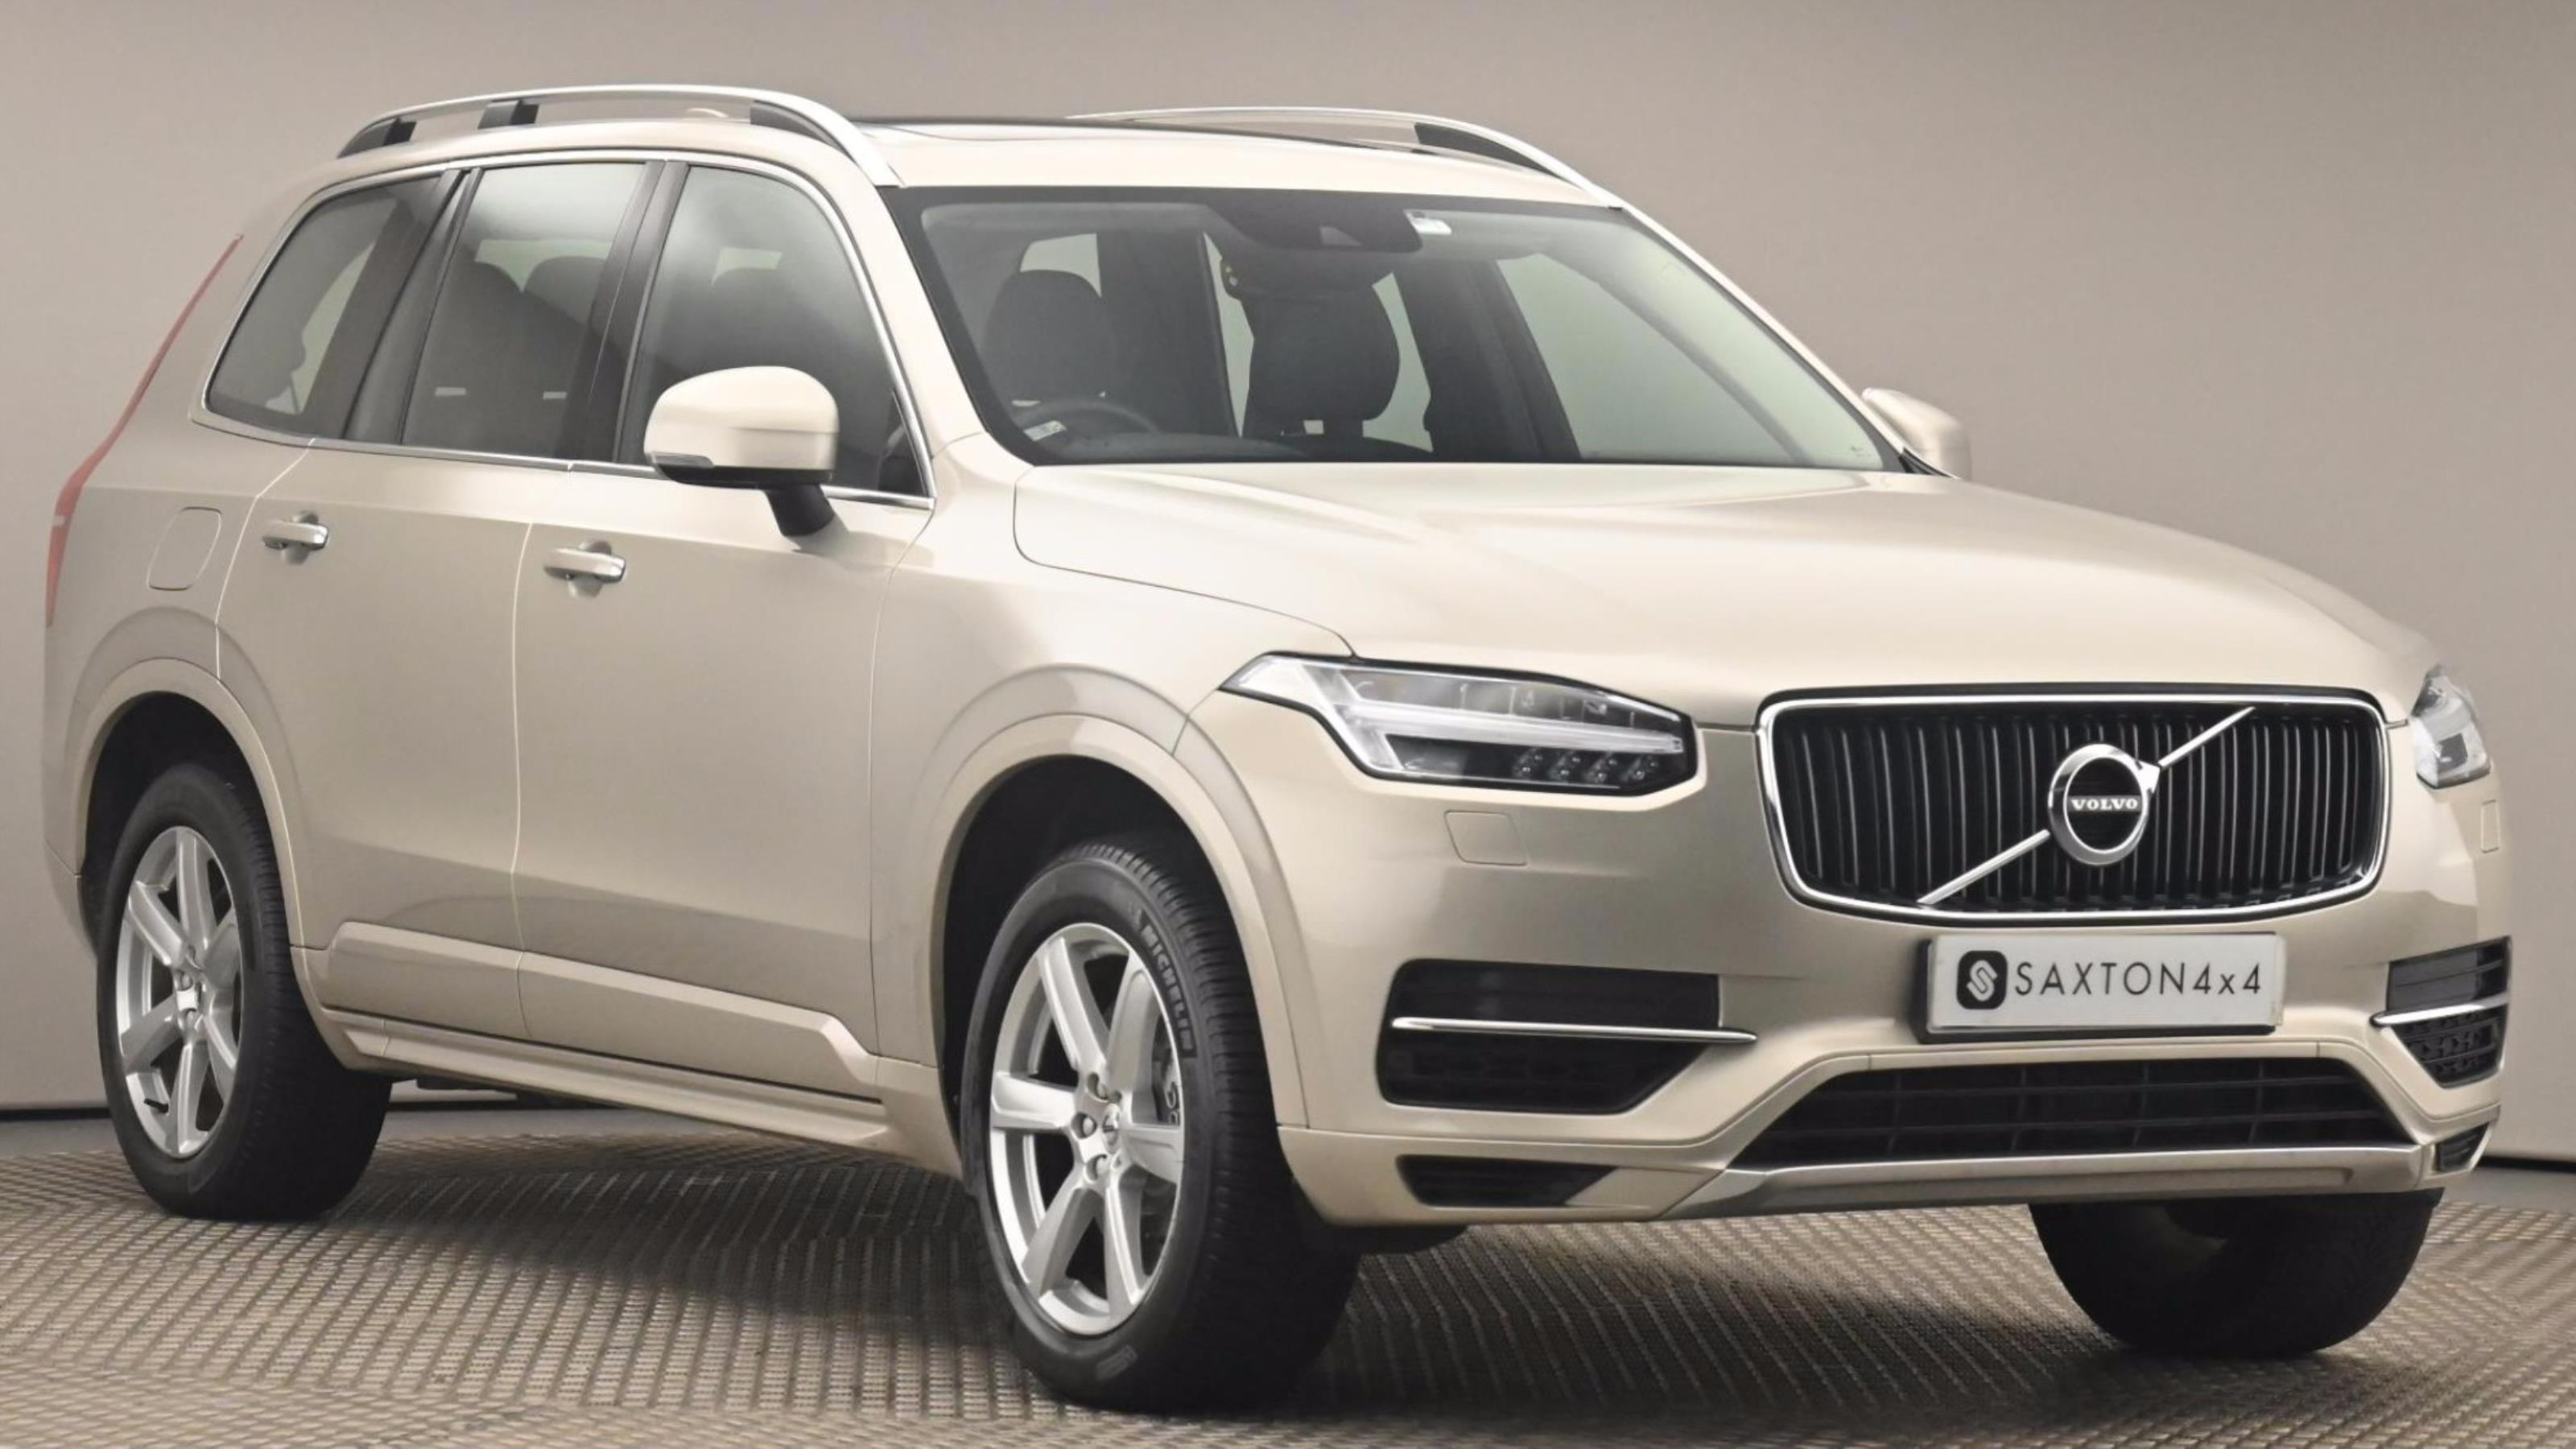 Used 2016 Volvo XC90 2.0 T8 Hybrid Momentum 5dr Geartronic GOLD at Saxton4x4